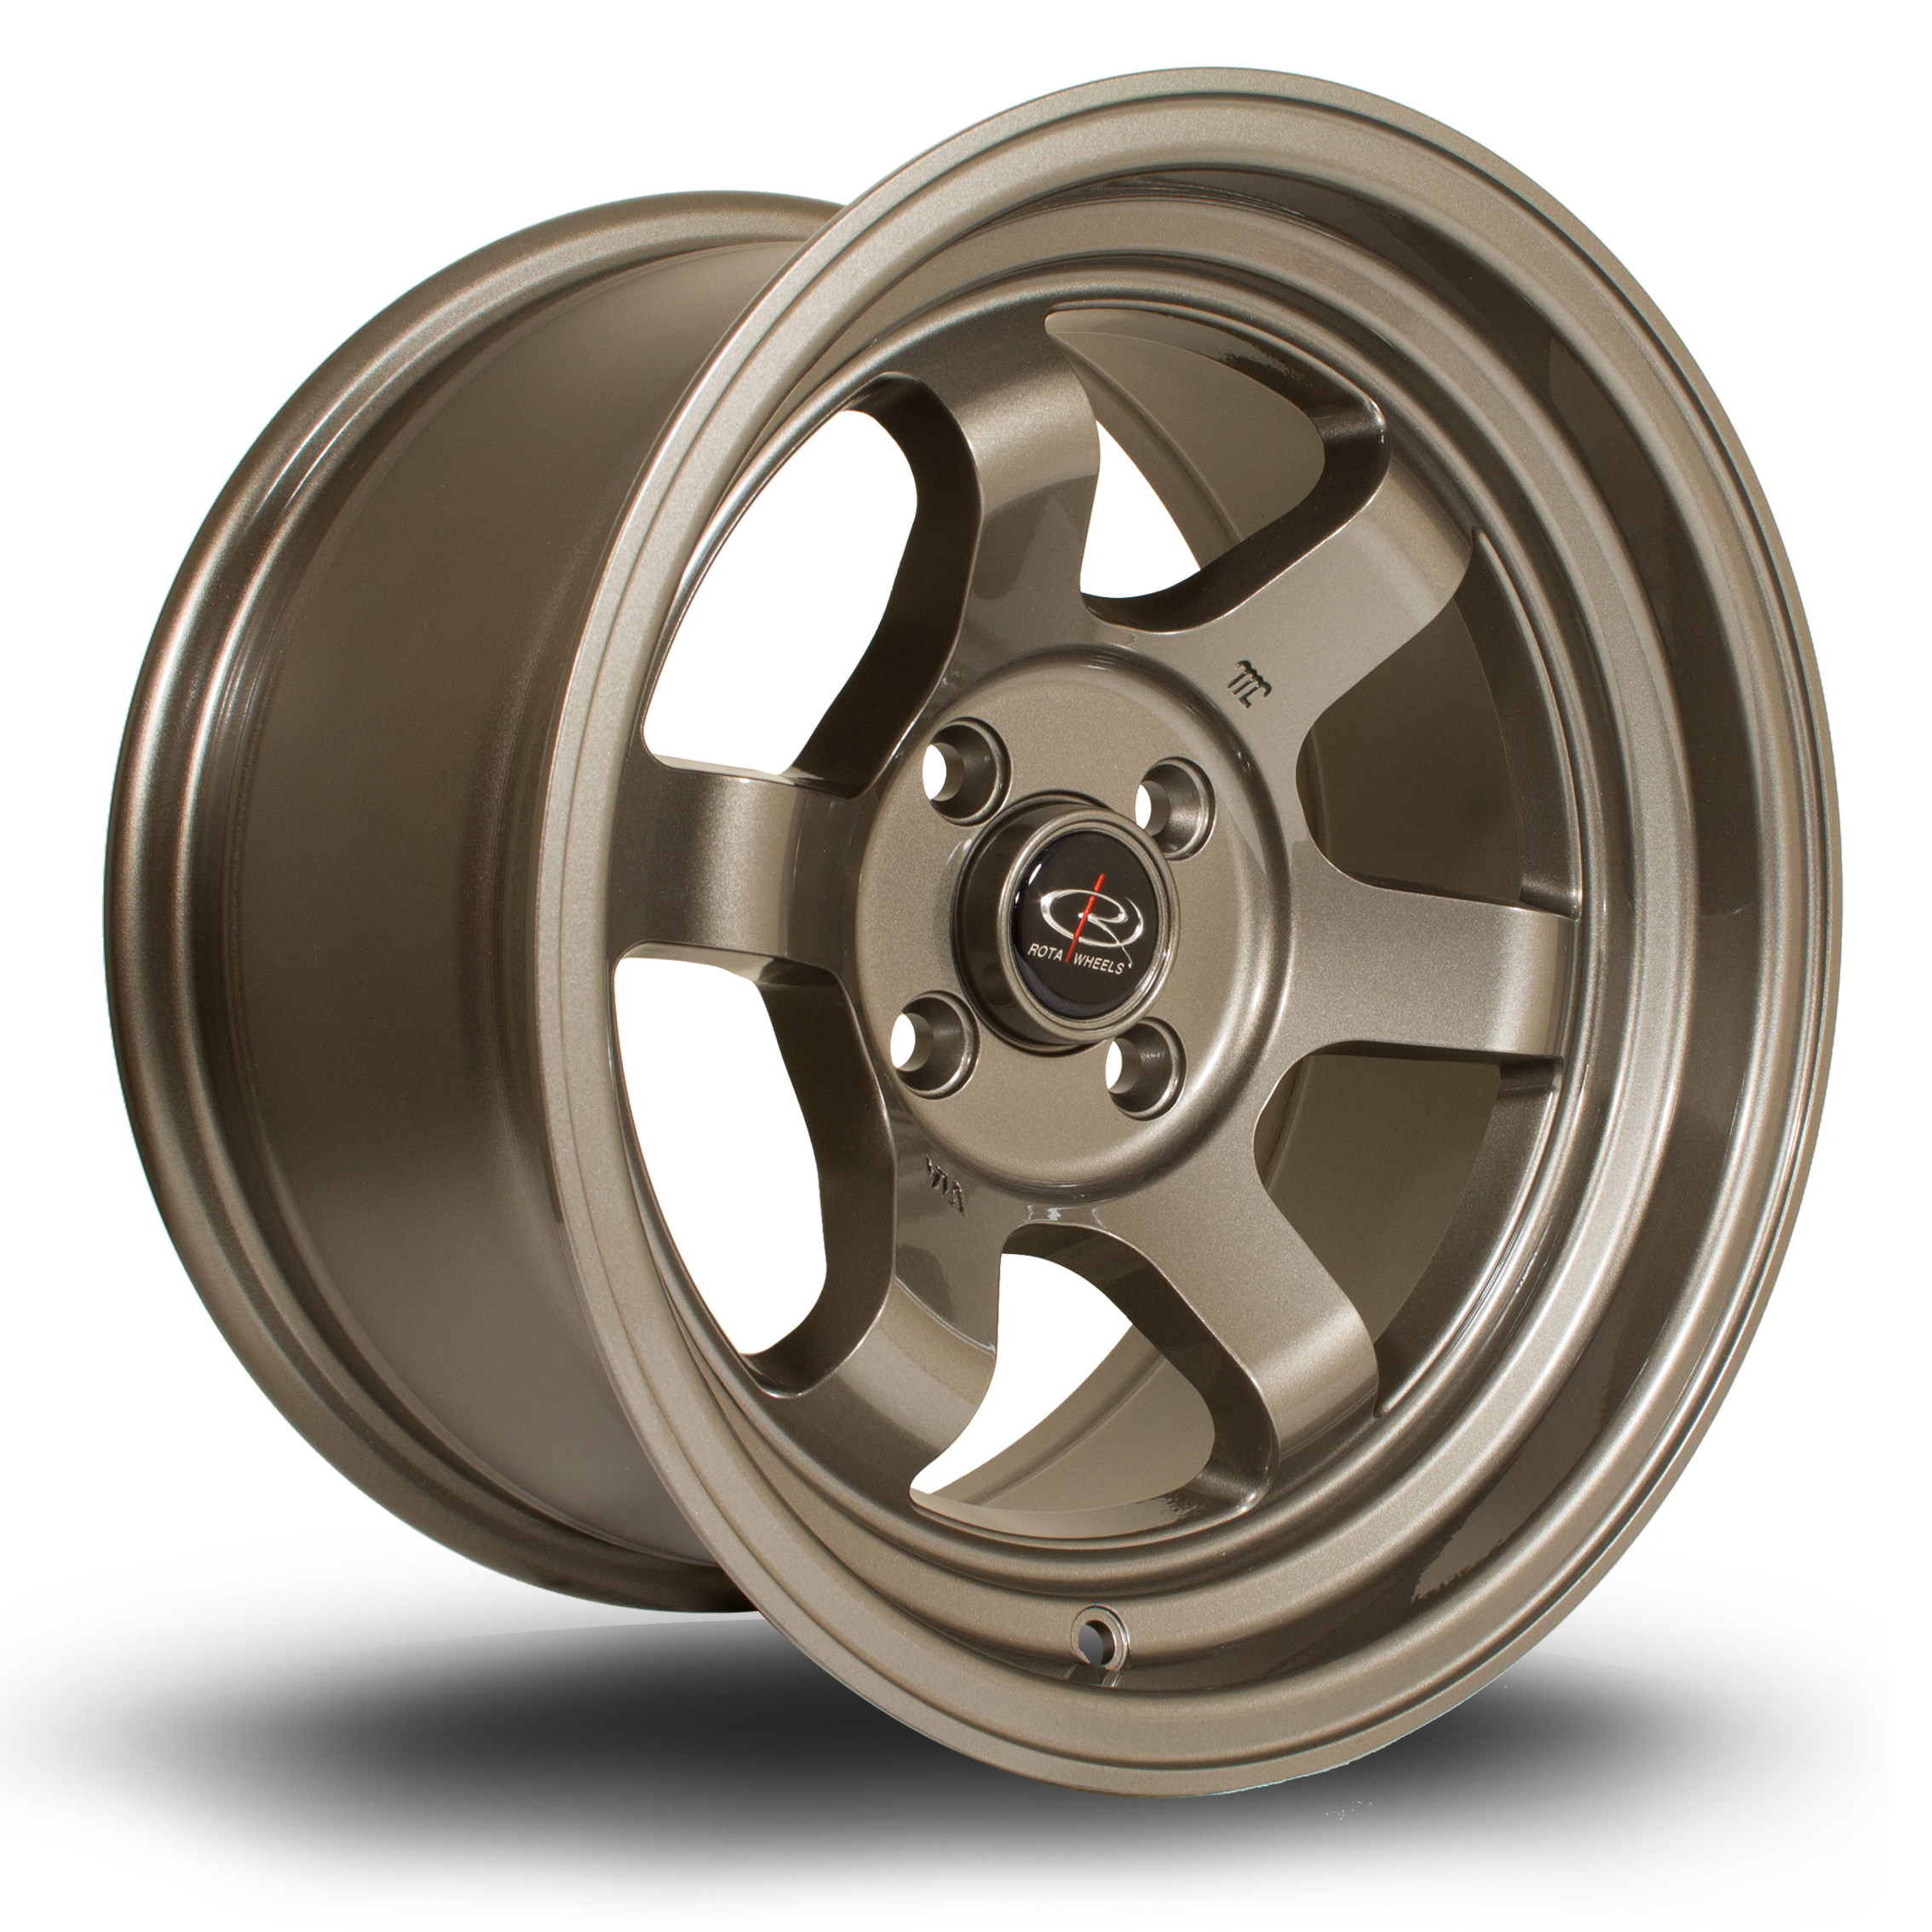 Rota Grid Max wheels